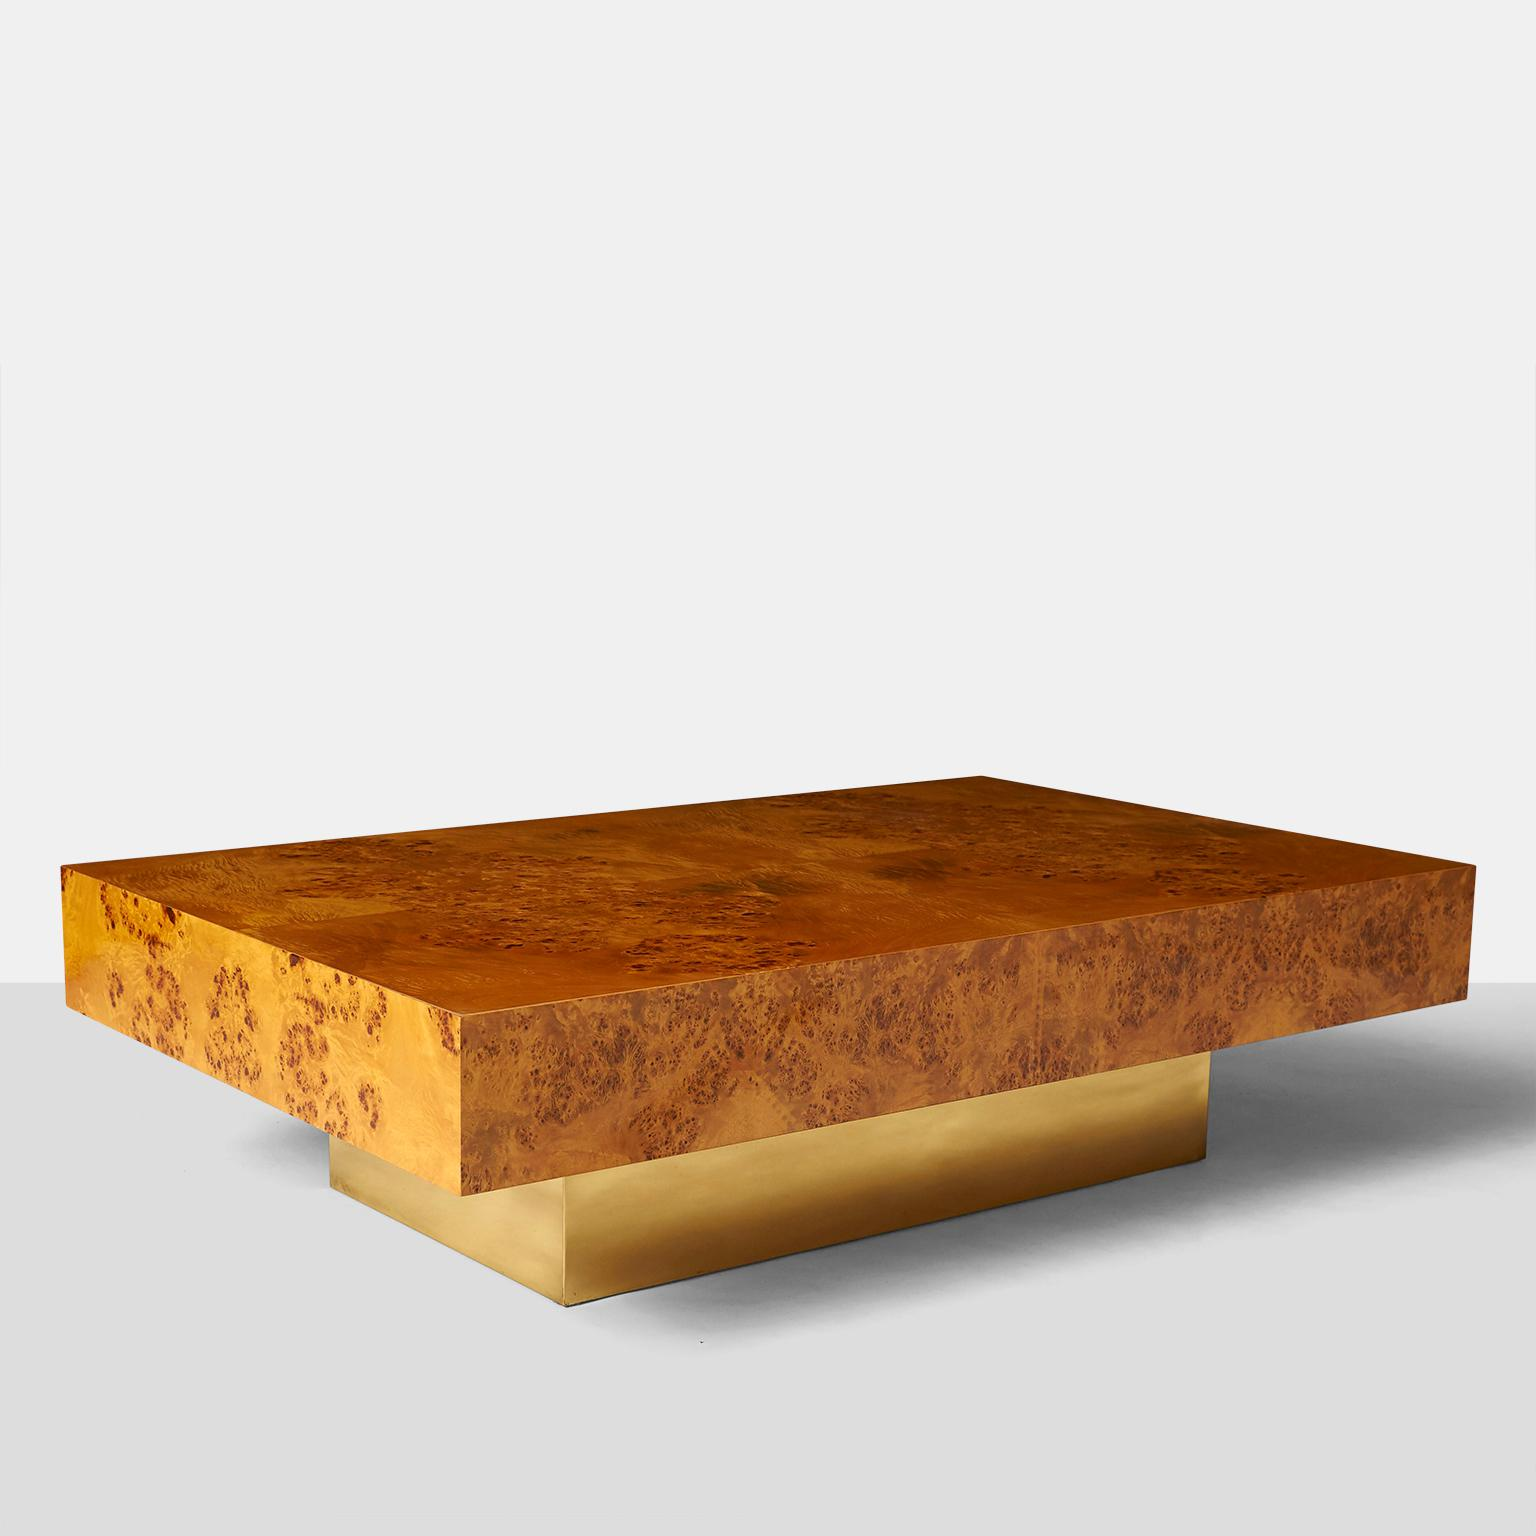 Attrayant A Large Rectangular Coffee Table Designed By Milo Baughman For Thayer  Coggin. The Body Of